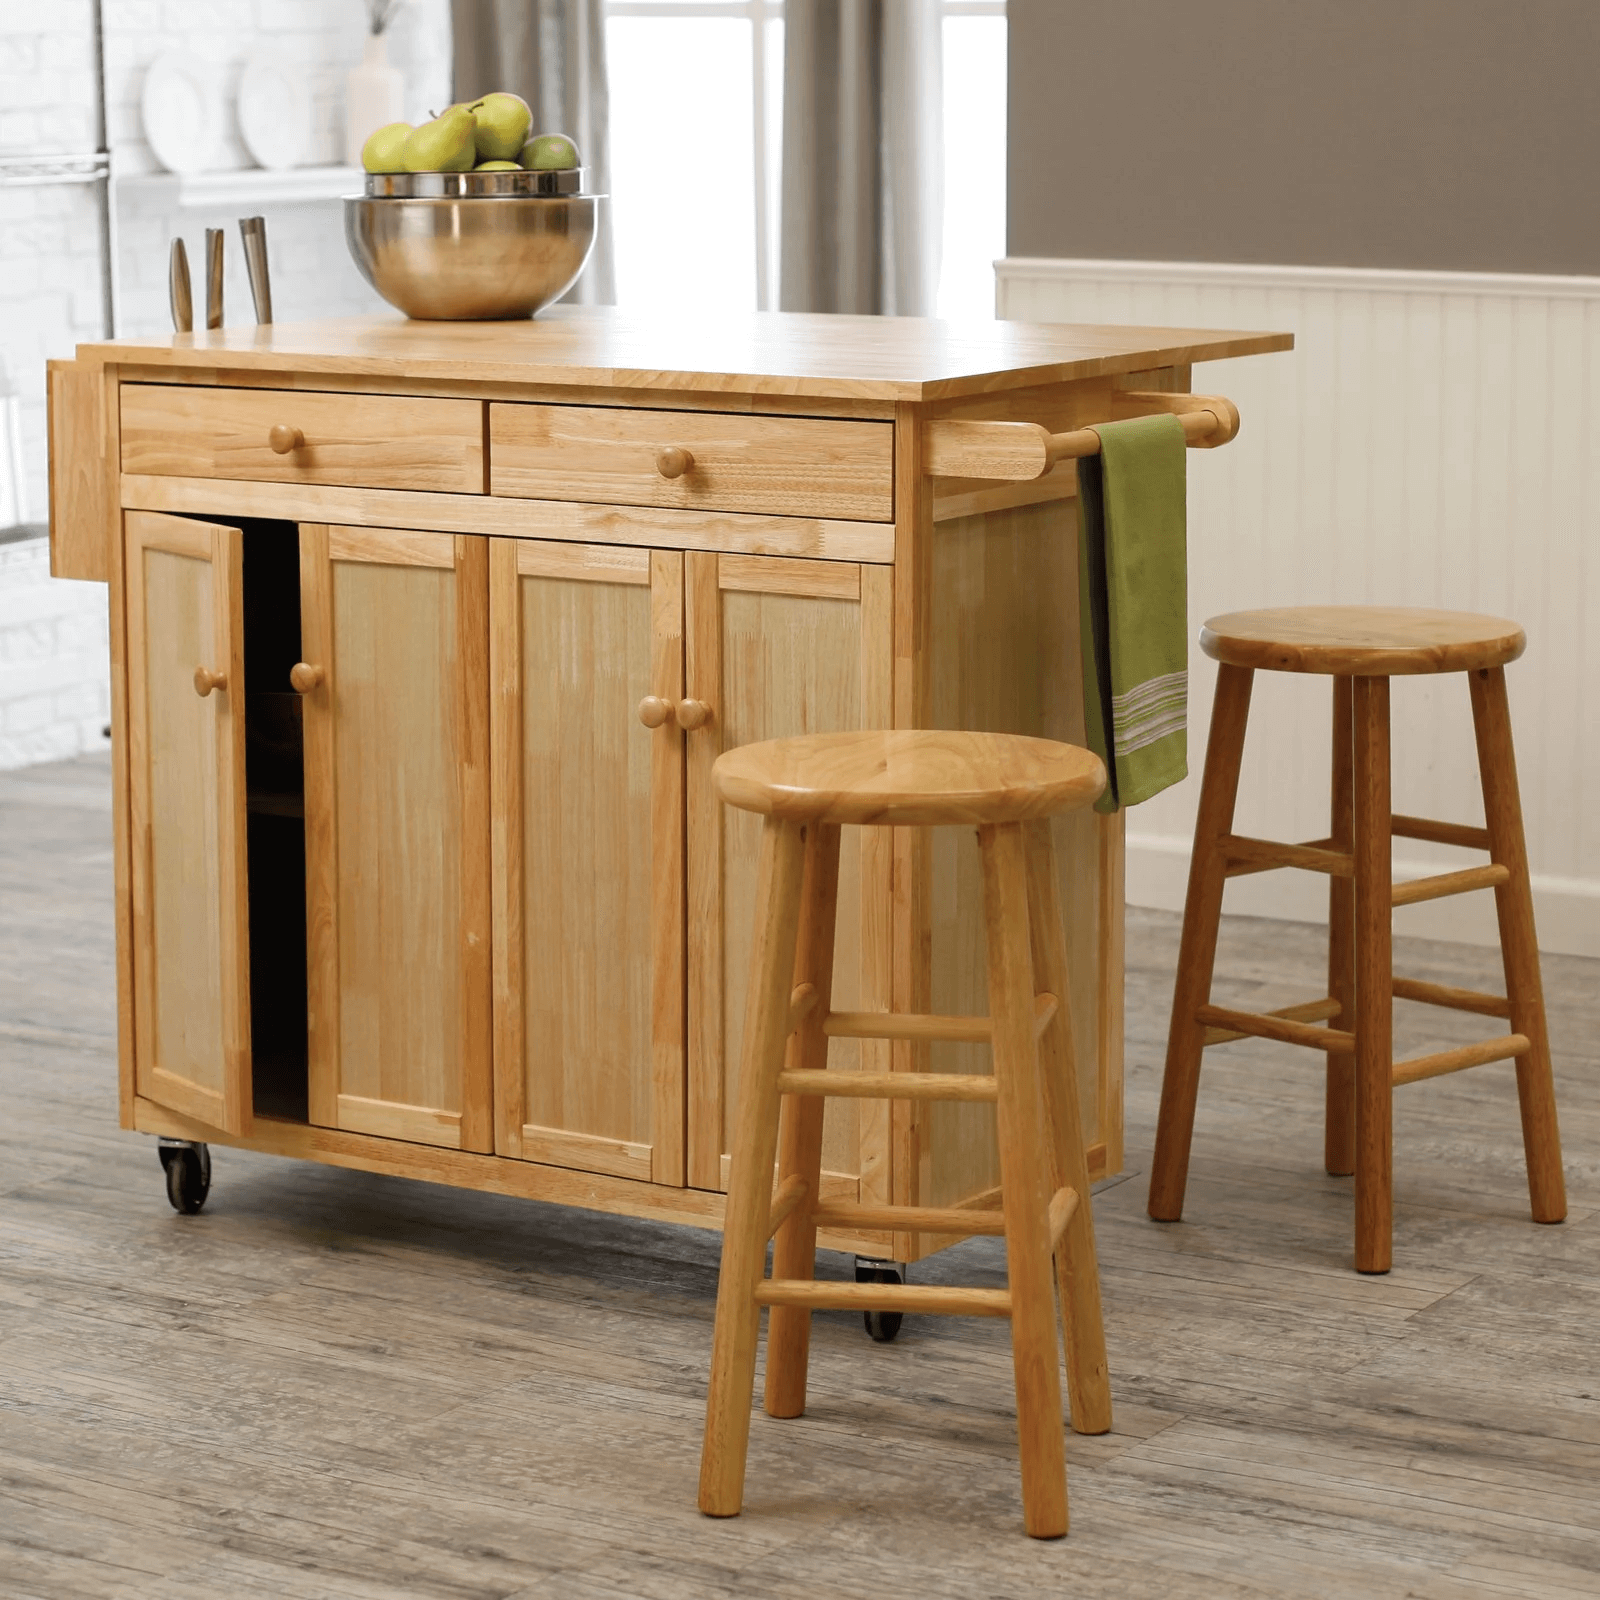 Natural wooden Kitchen Island Cart with Stools